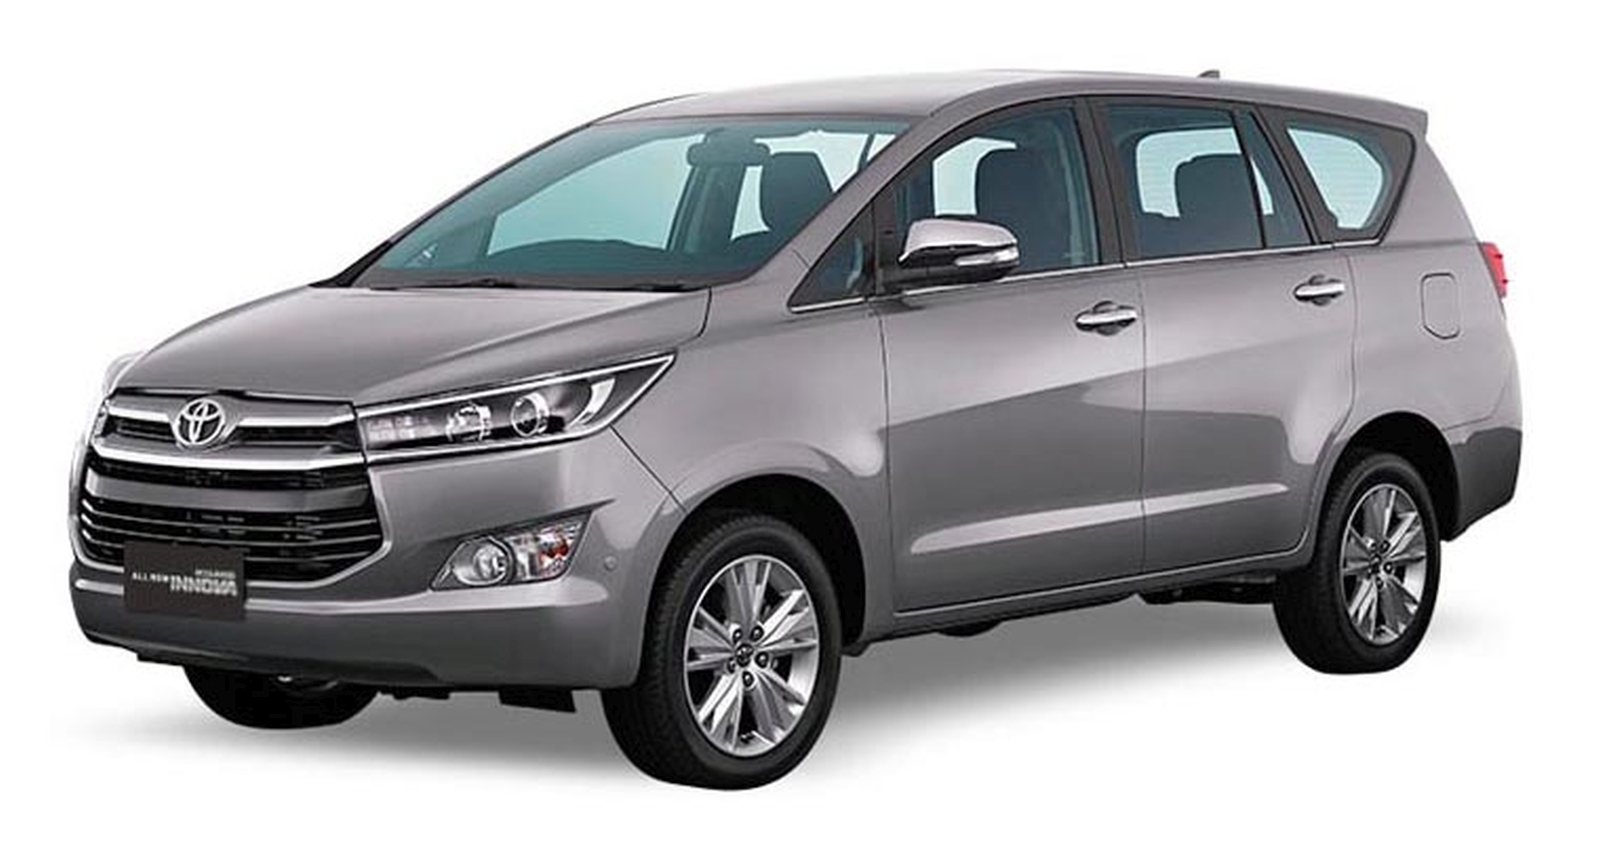 2016 Toyota Innova officially revealed: Images, details ...